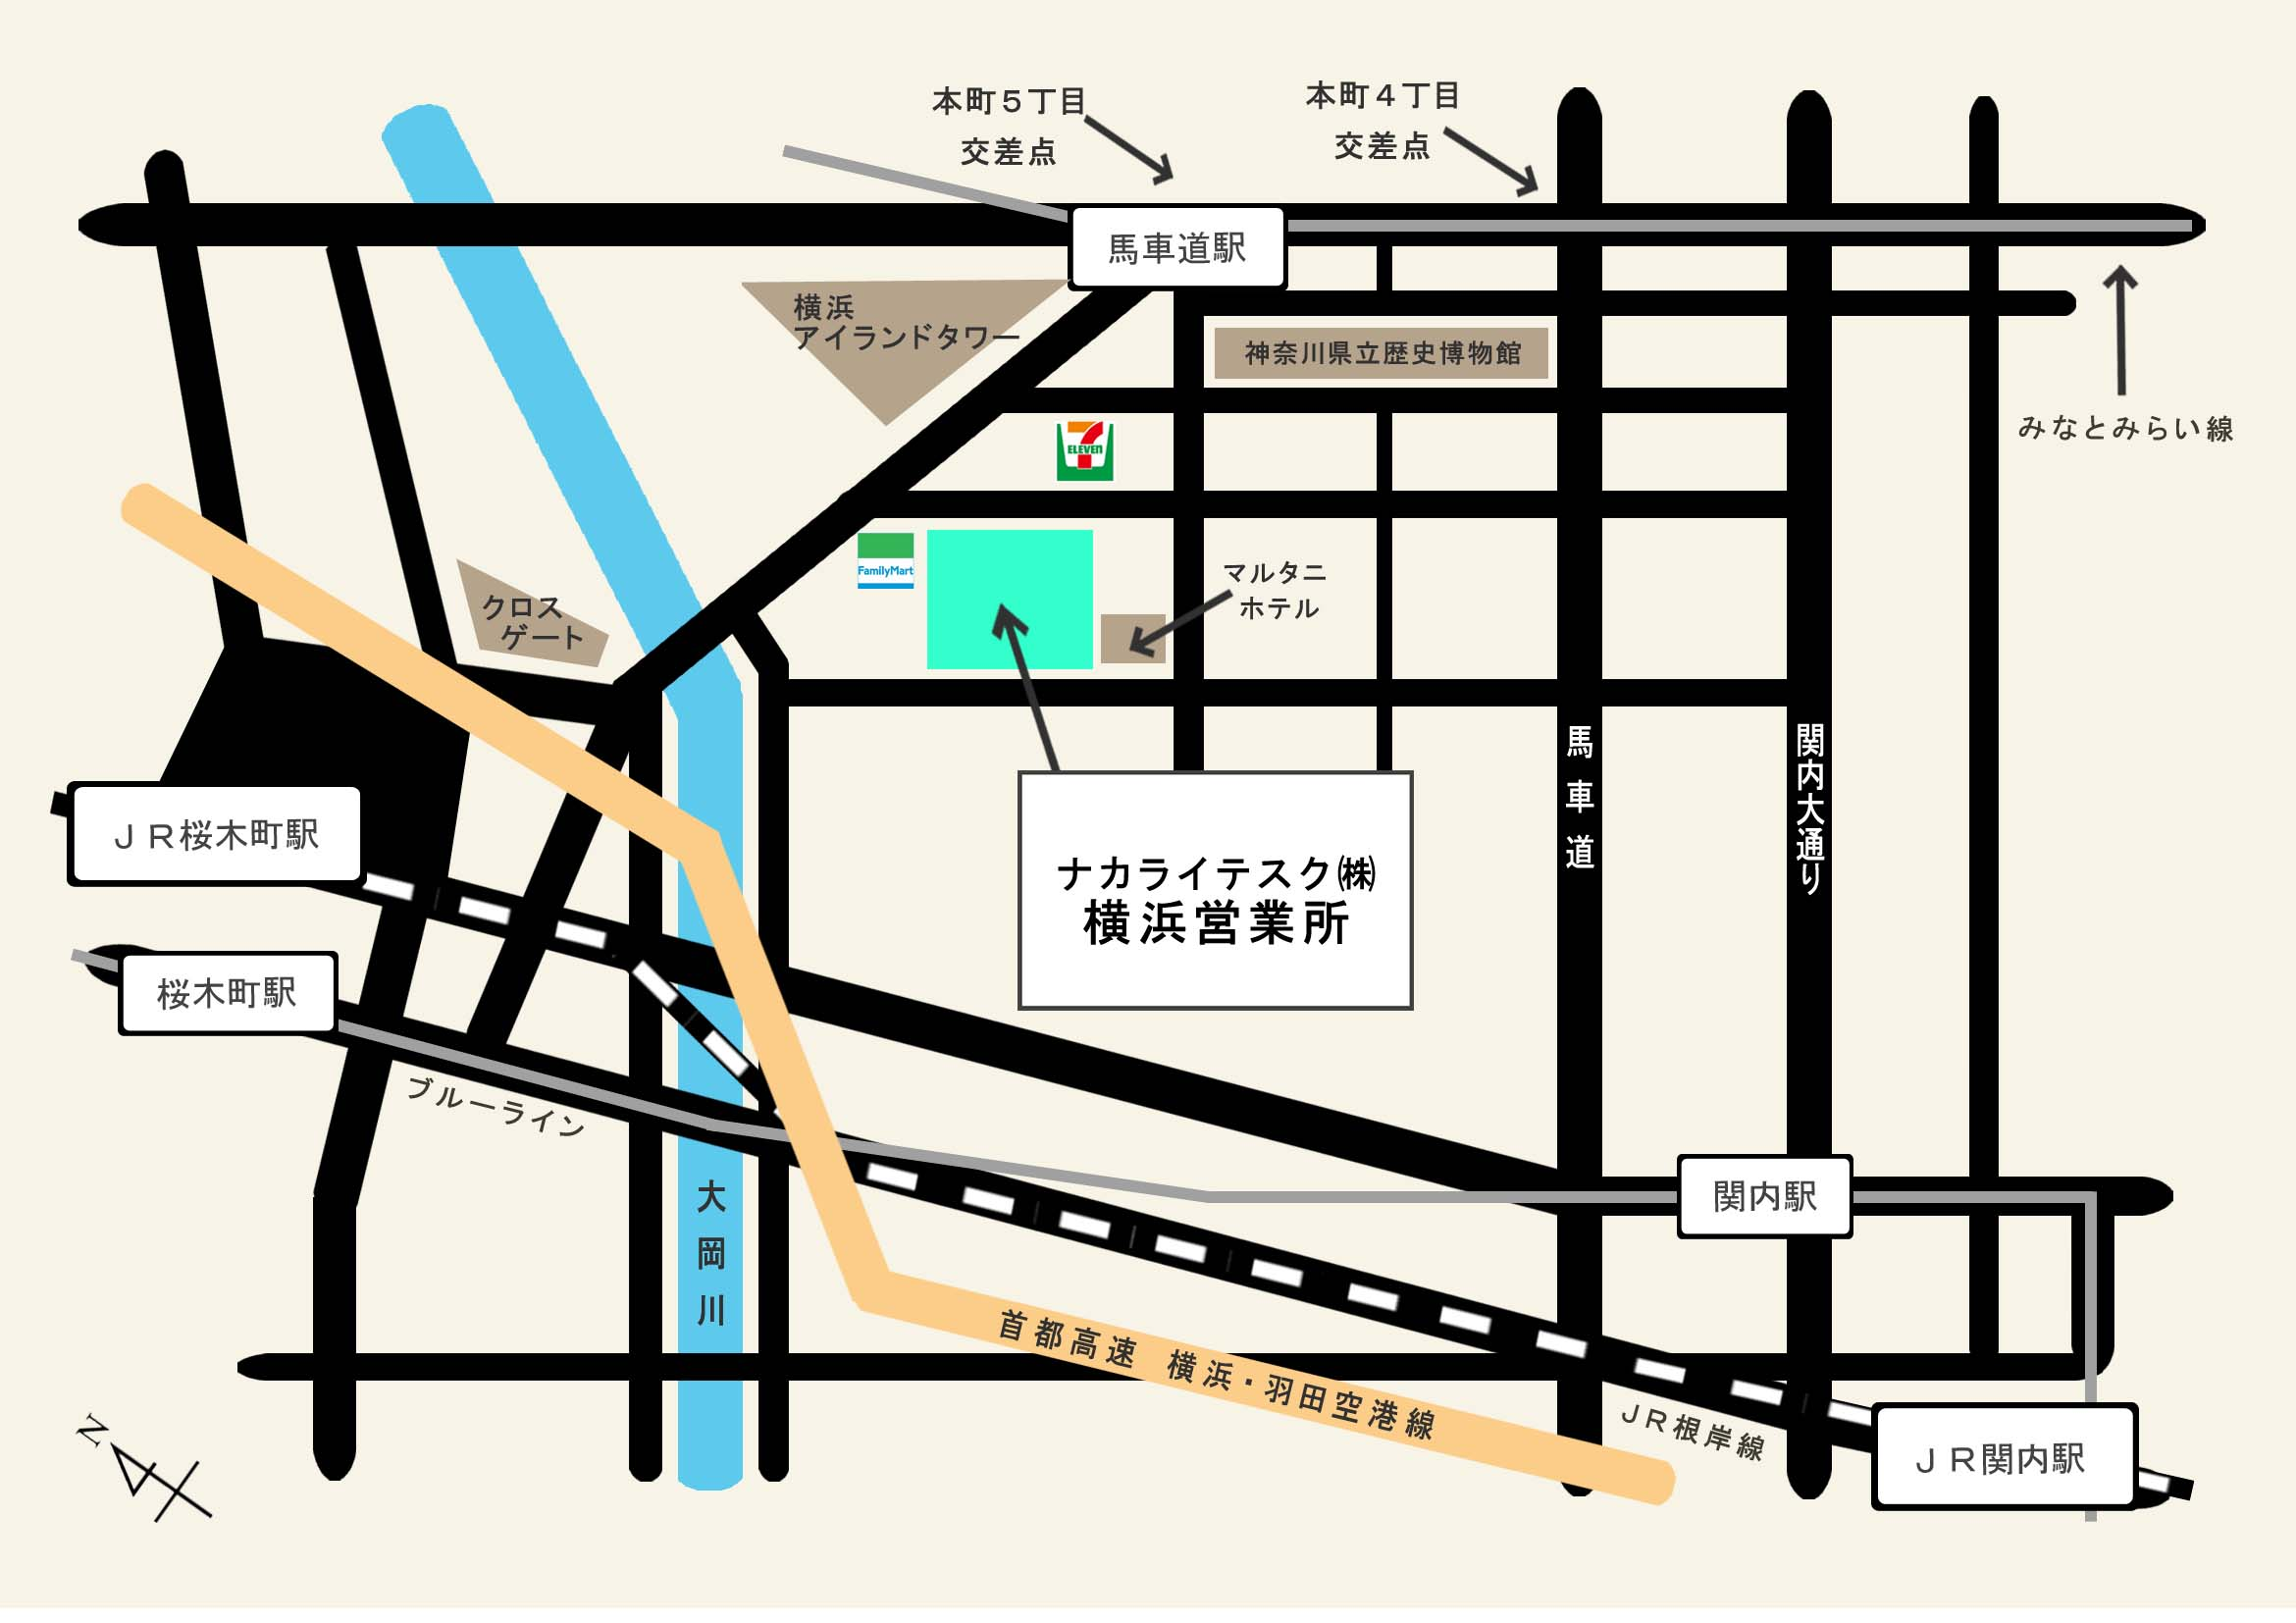 map-yokohama20151026.jpg